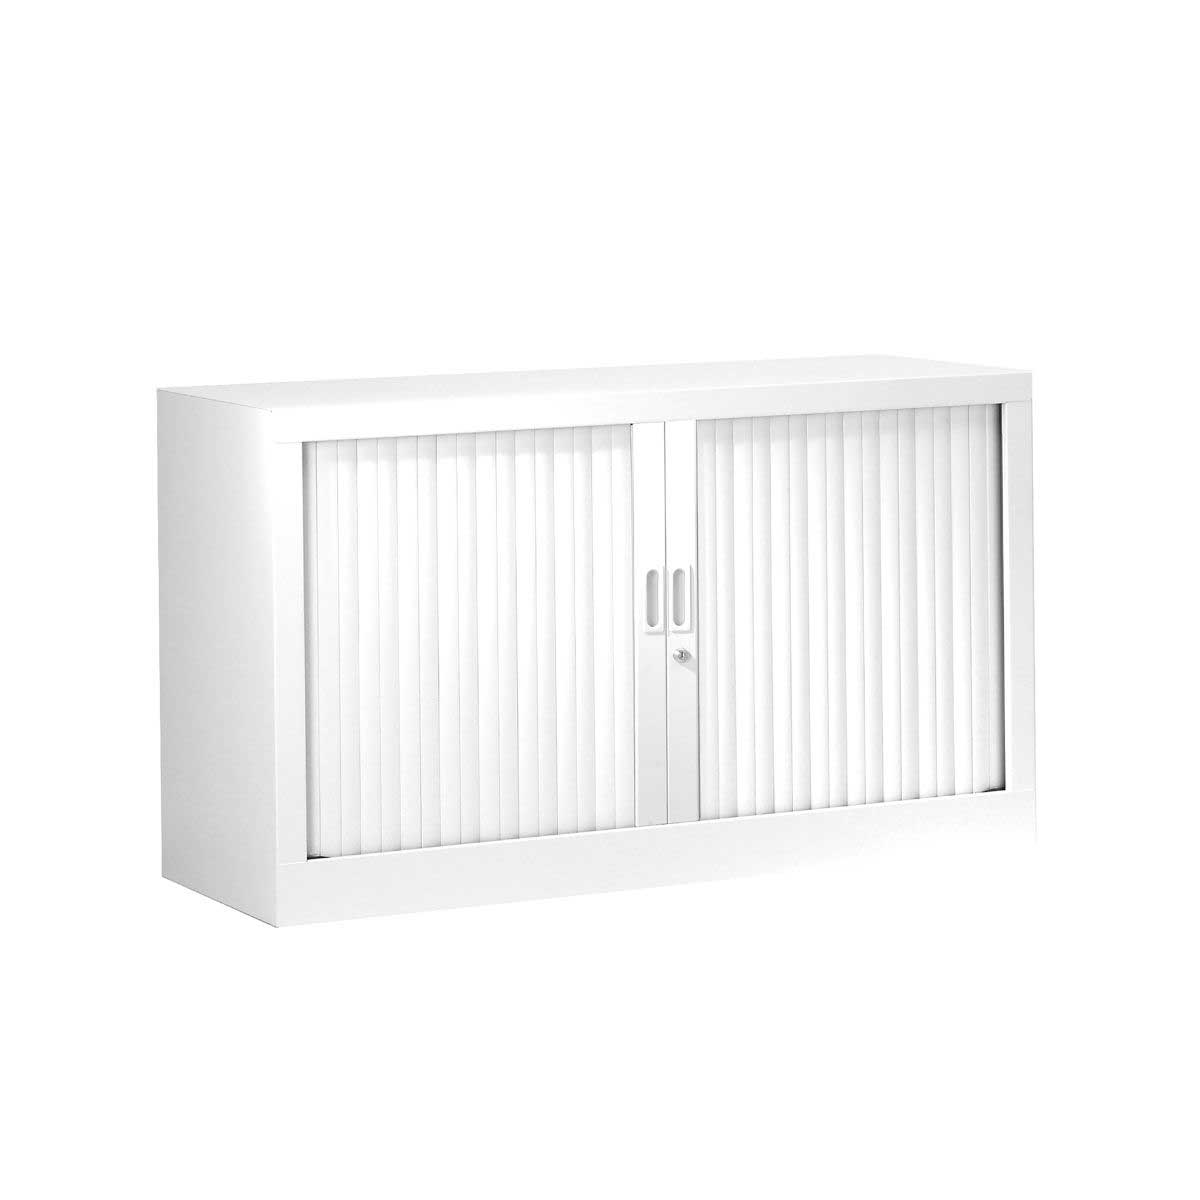 Generic Tambour Cupboard Height 695mm, White